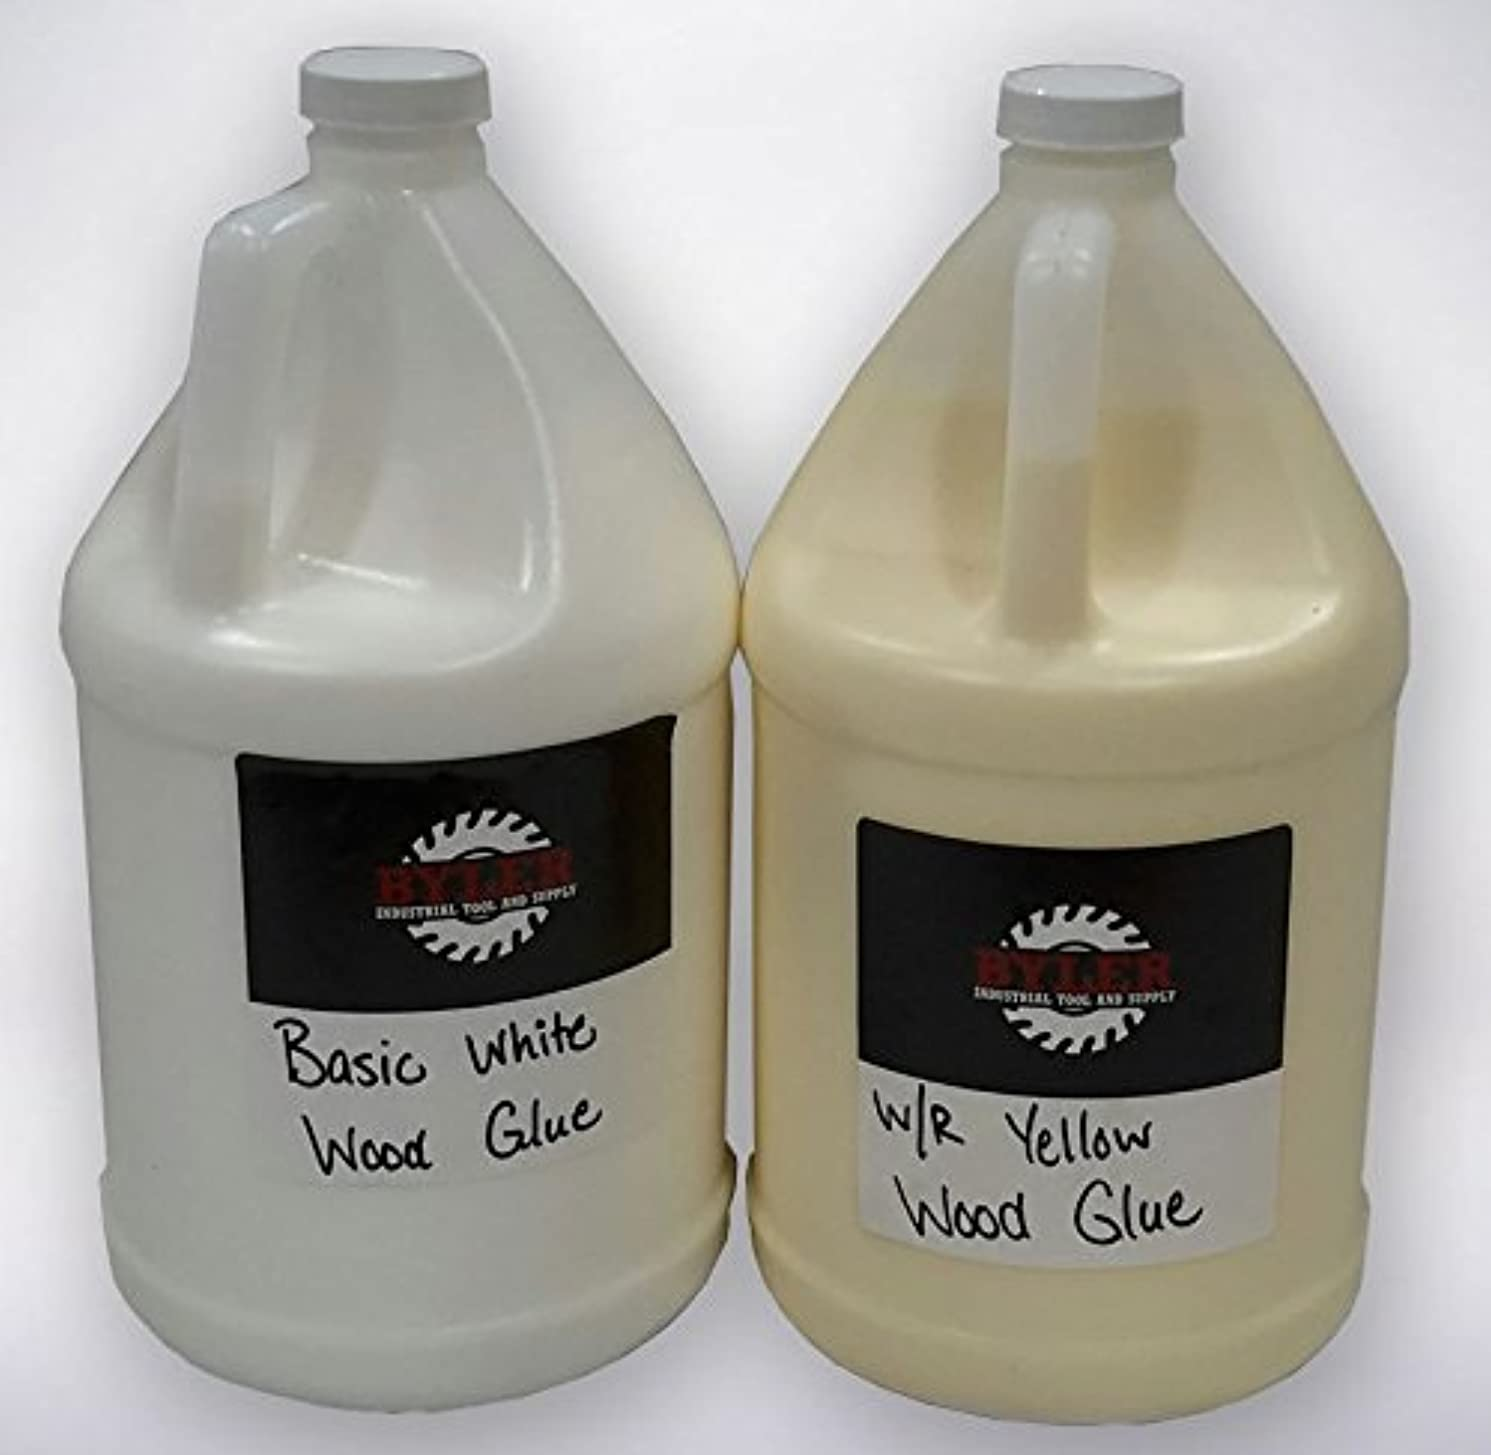 Byler's Glue-All Multi-Purpose Liquid Wood Glue, Extra Strong, 1 Gallon, 1 Count - Great For Making Slime